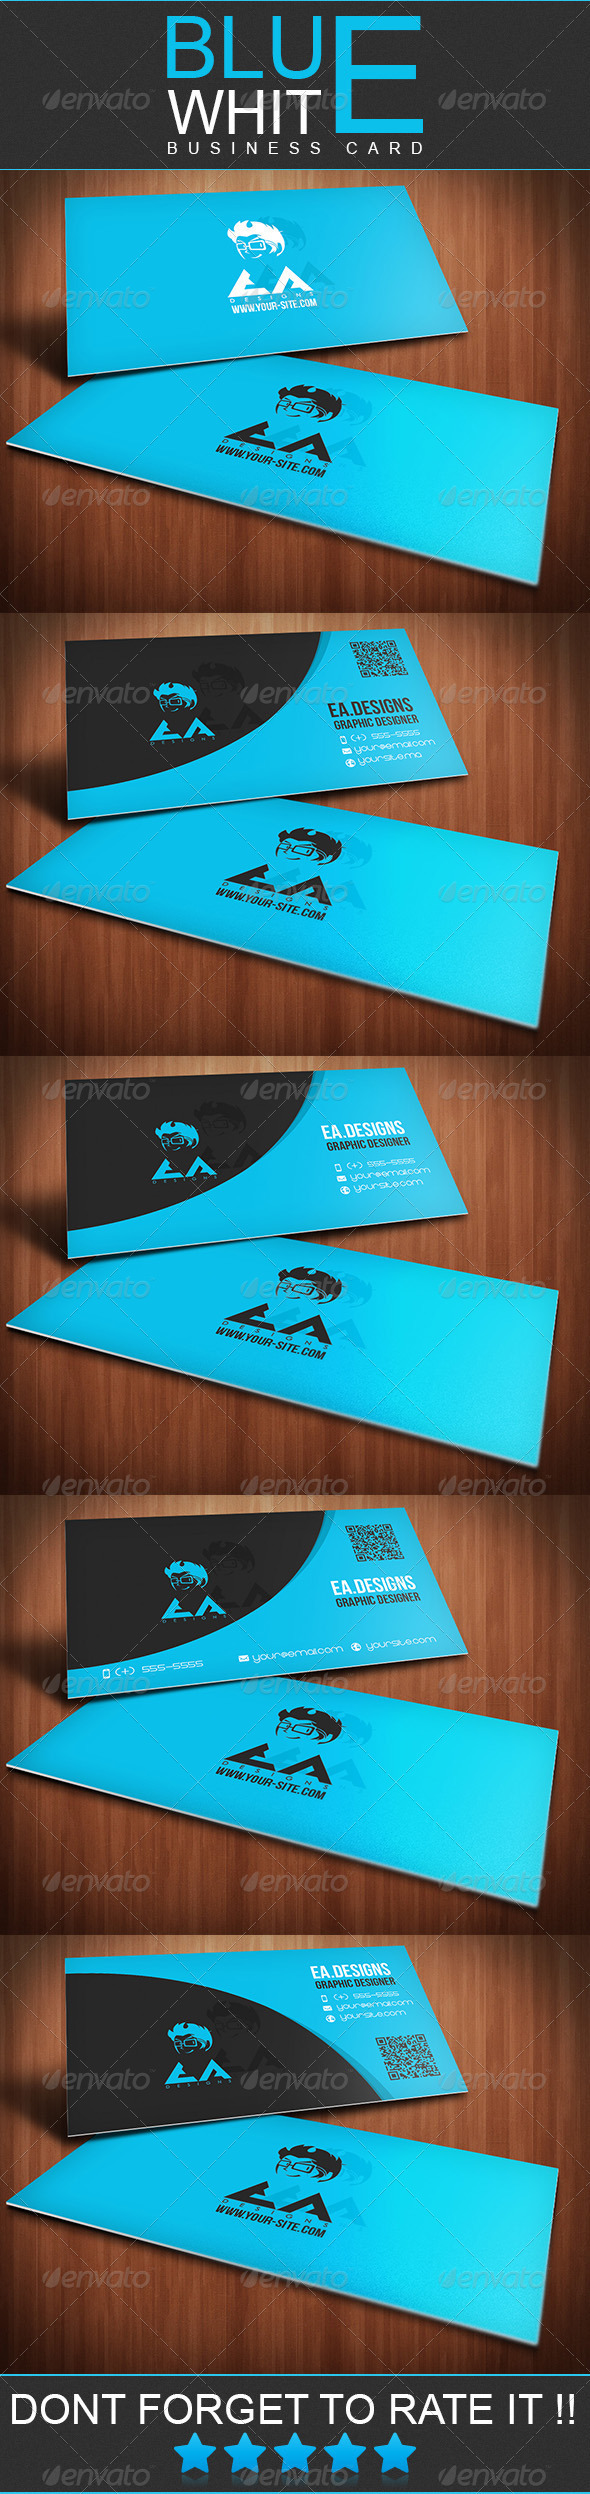 Blue White Business Card - Creative Business Cards